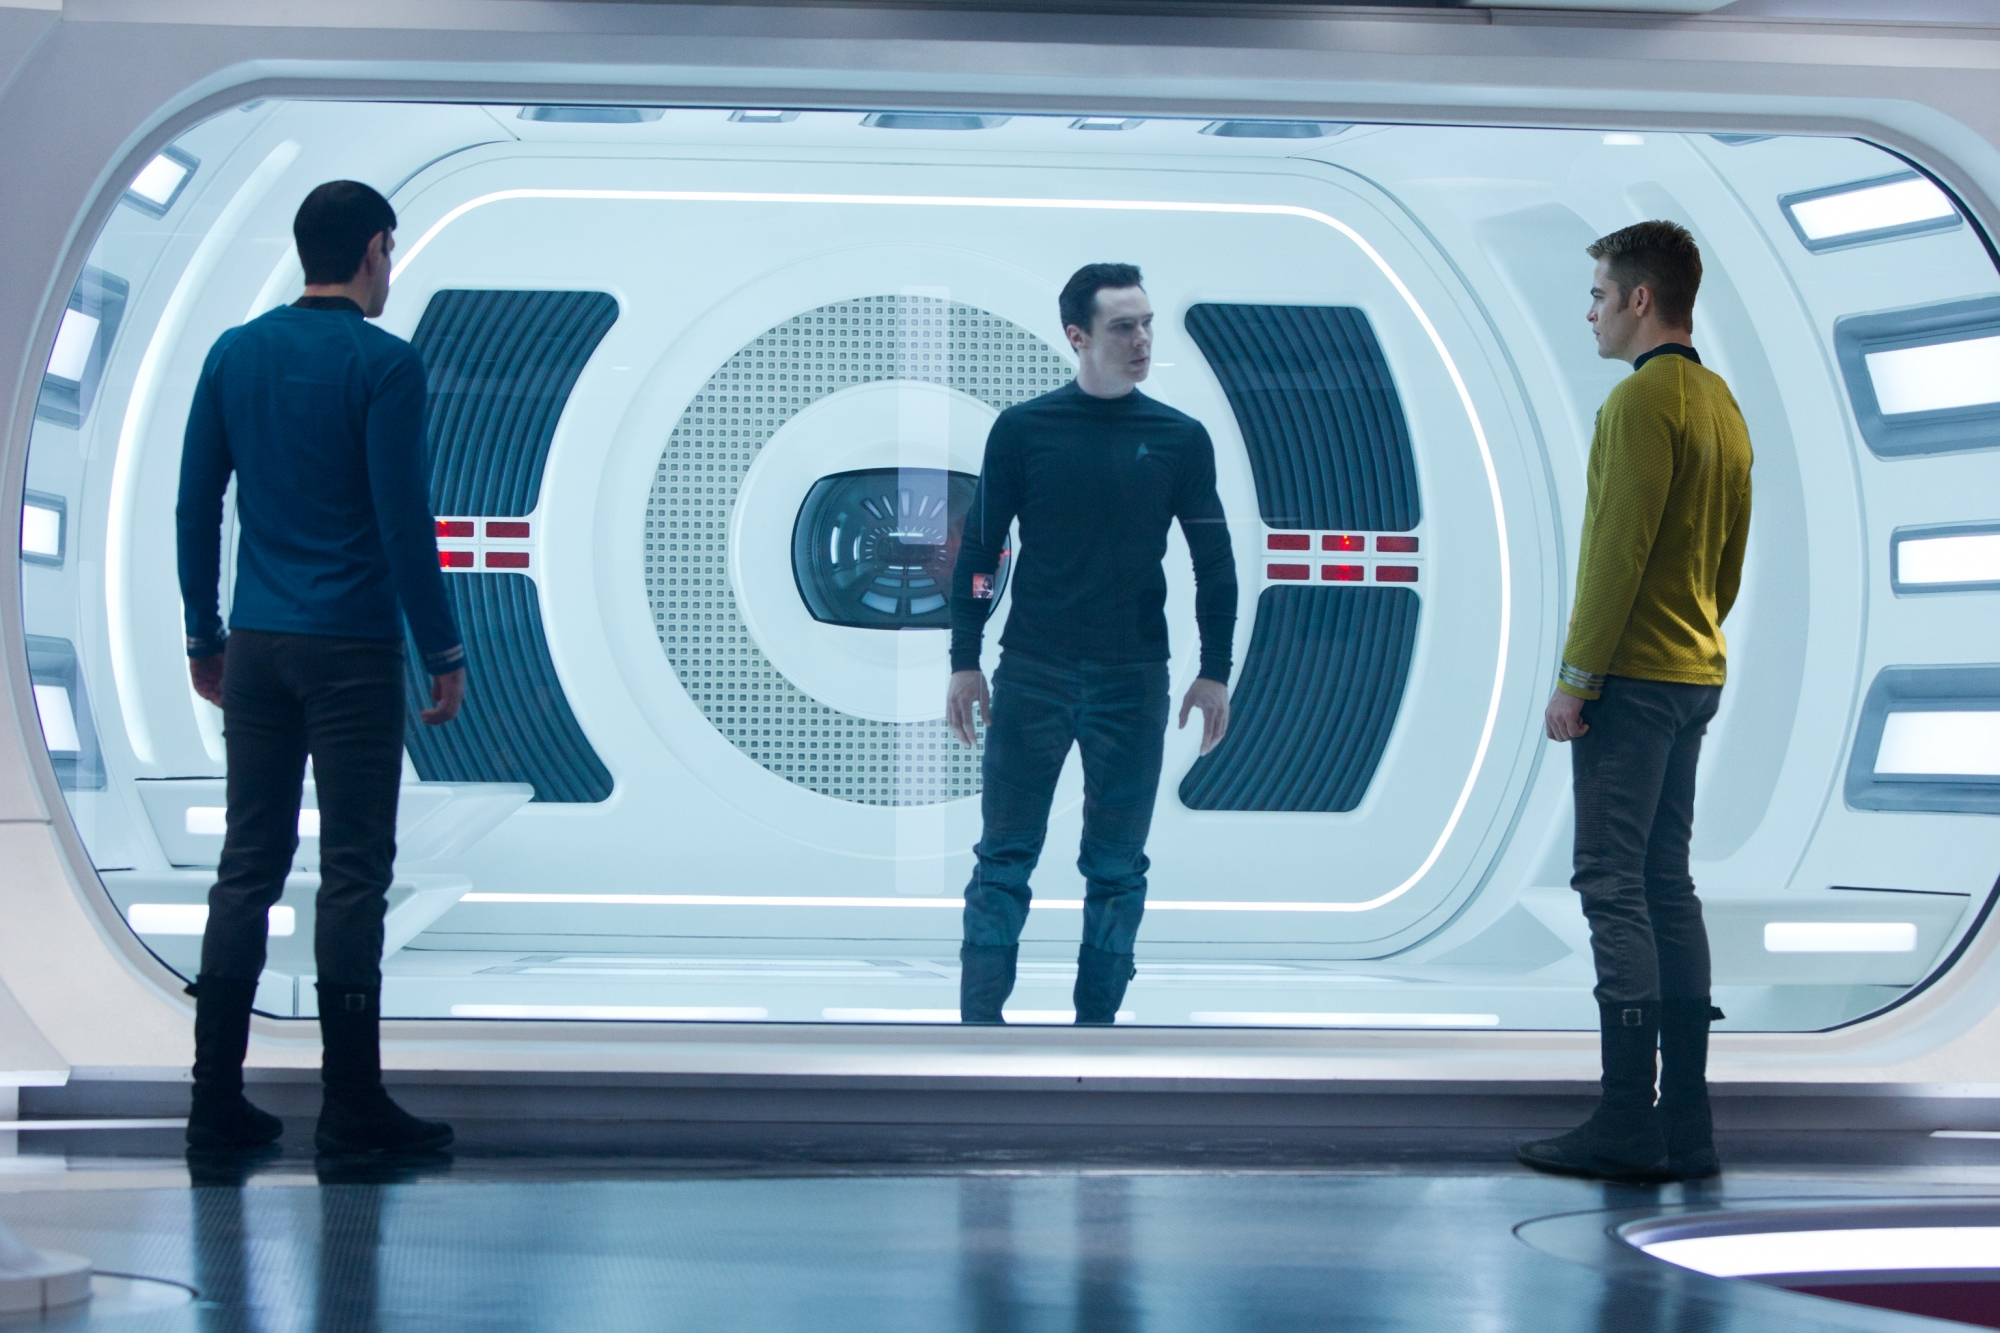 KudoReview: Star Trek Into Darkness (스타 트렉 다크니스)